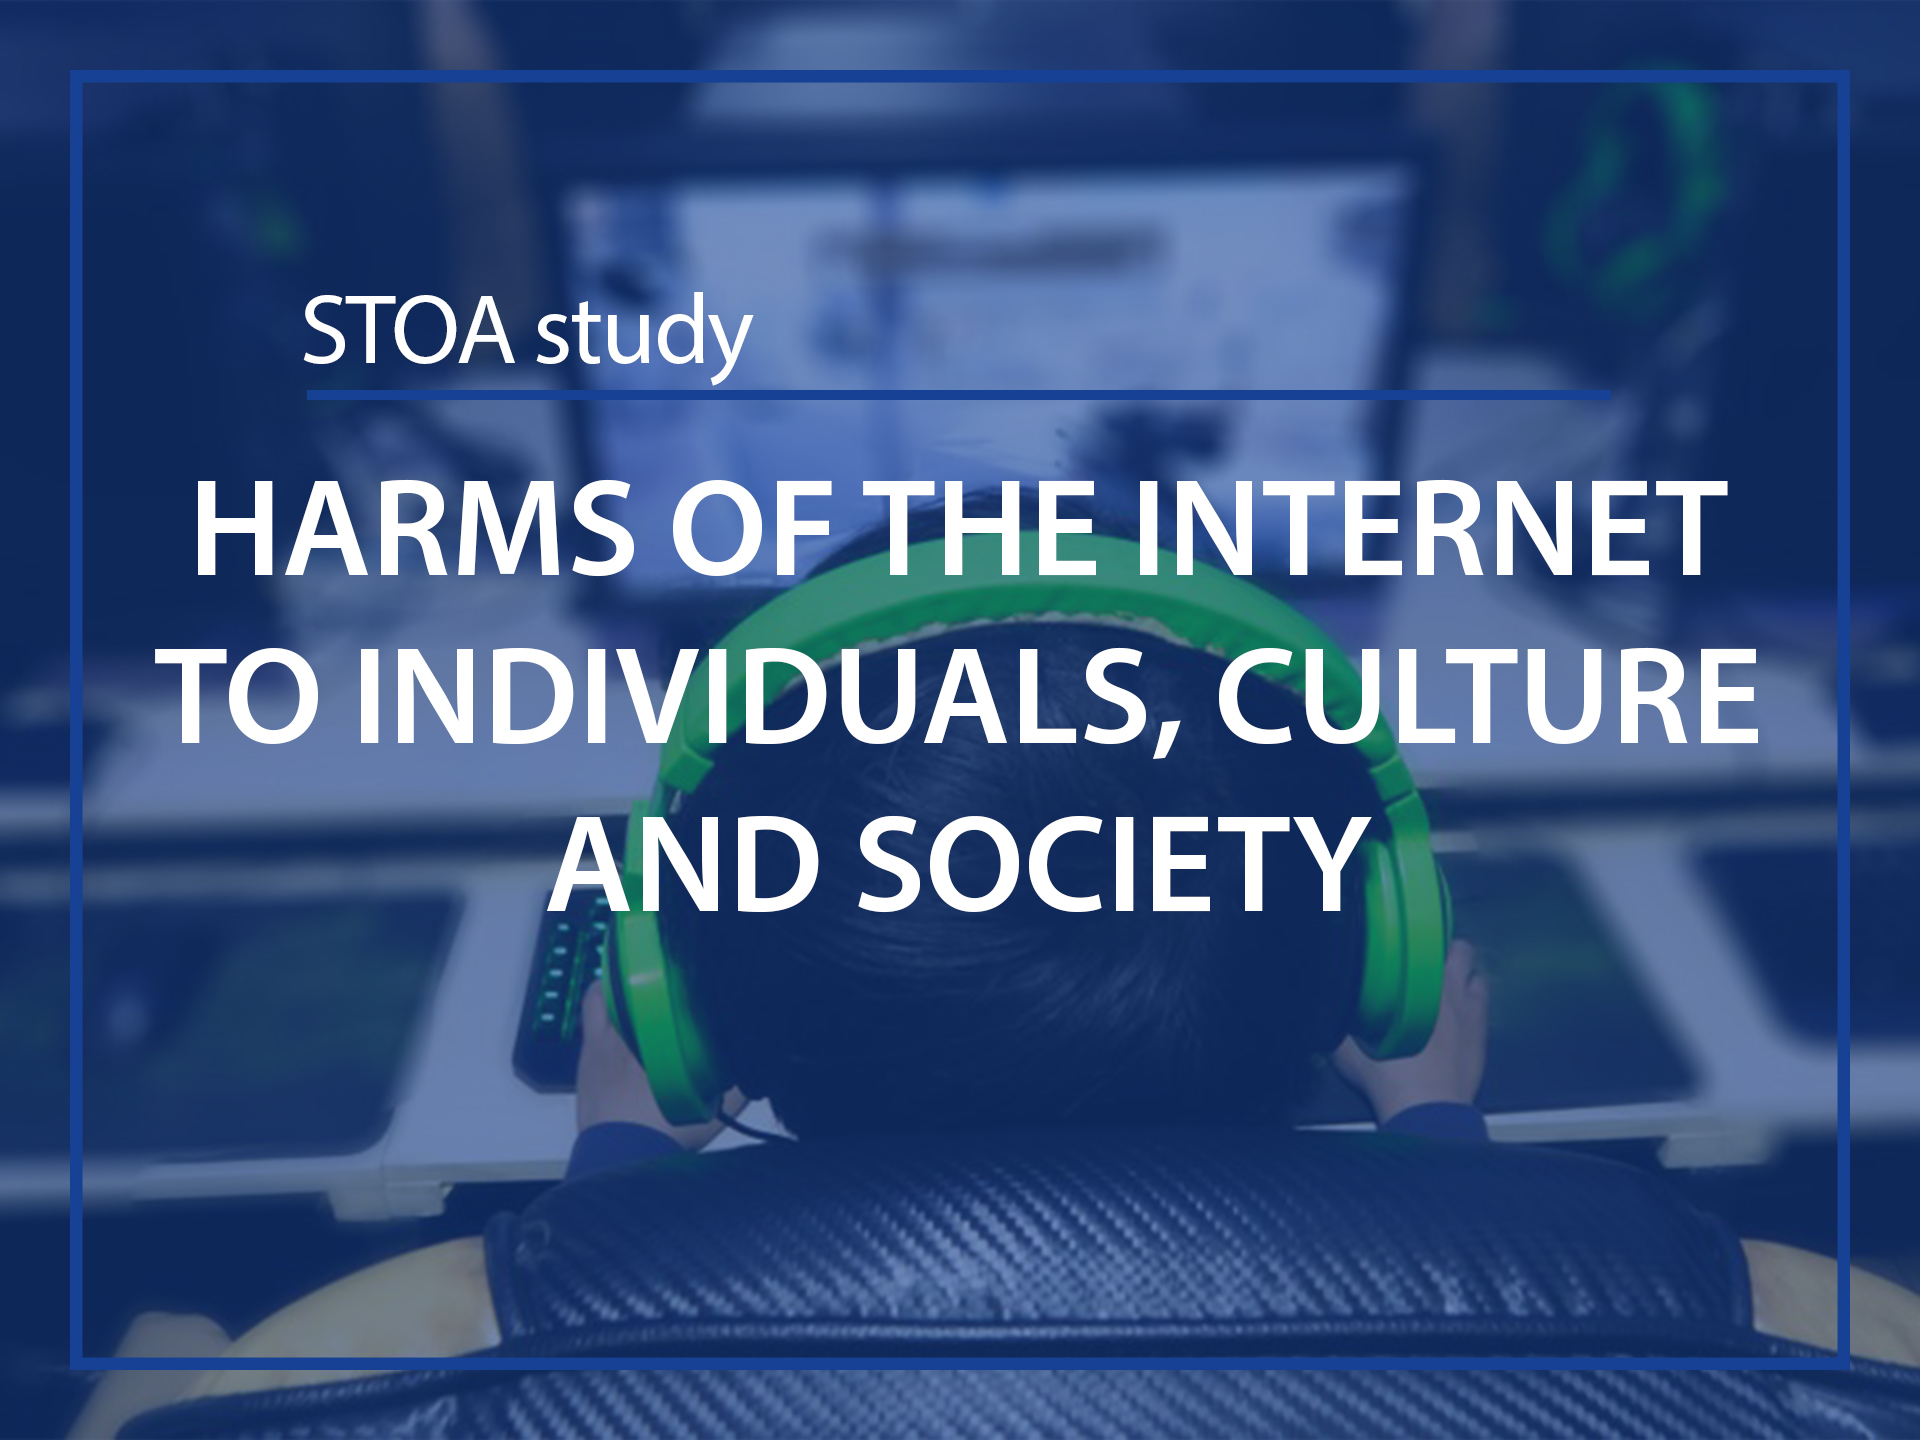 Harms of the internet to individuals, culture and society